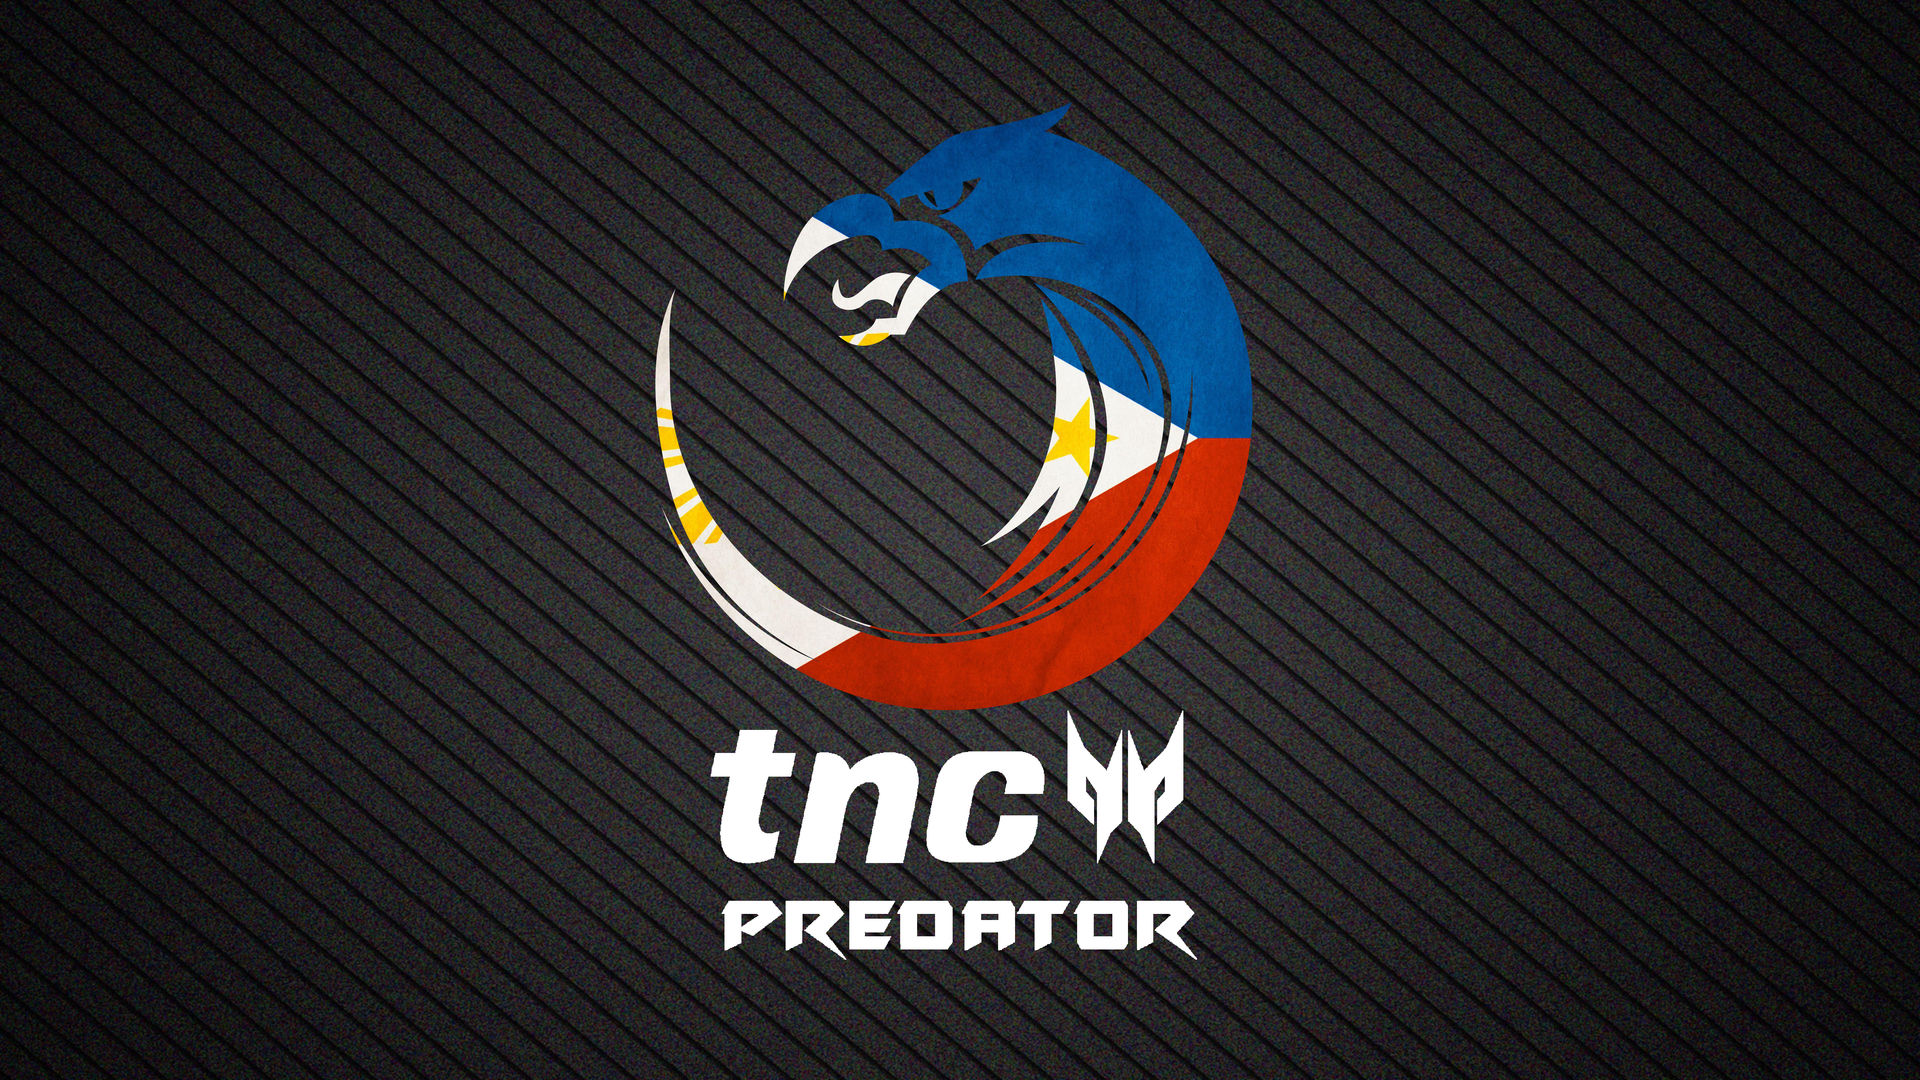 Tnc Predator Wallpaper 6k By Lancecabigting On Deviantart